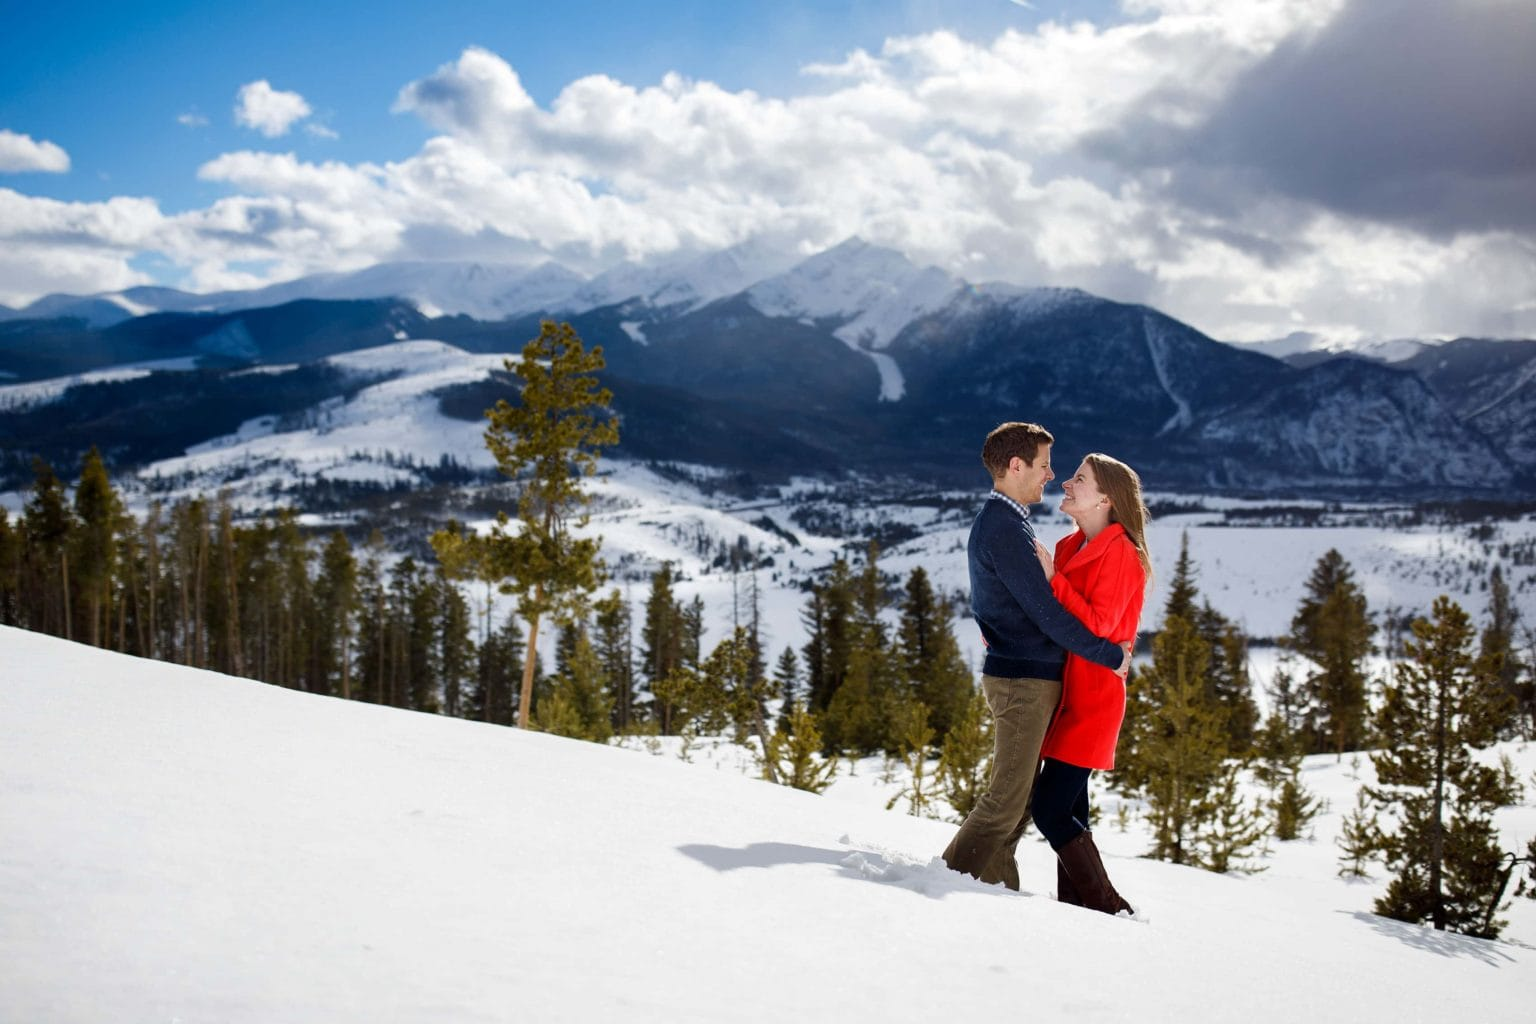 Jessica wears a red coat while embracing with Mike in the snow at Sapphire Point during their winter keystone engagement